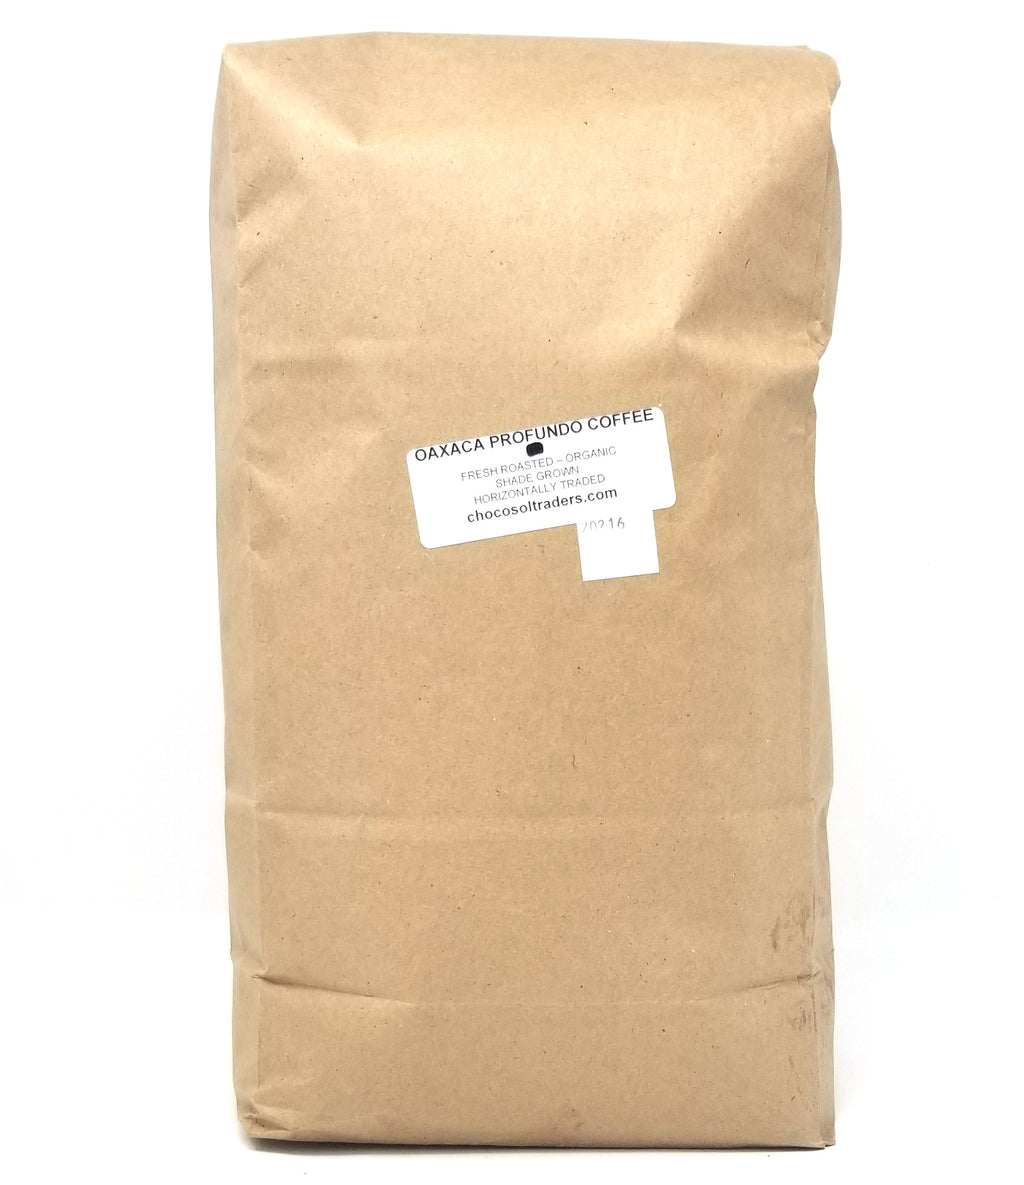 Oaxaca Coffee Beans - 5lb Bulk Deal